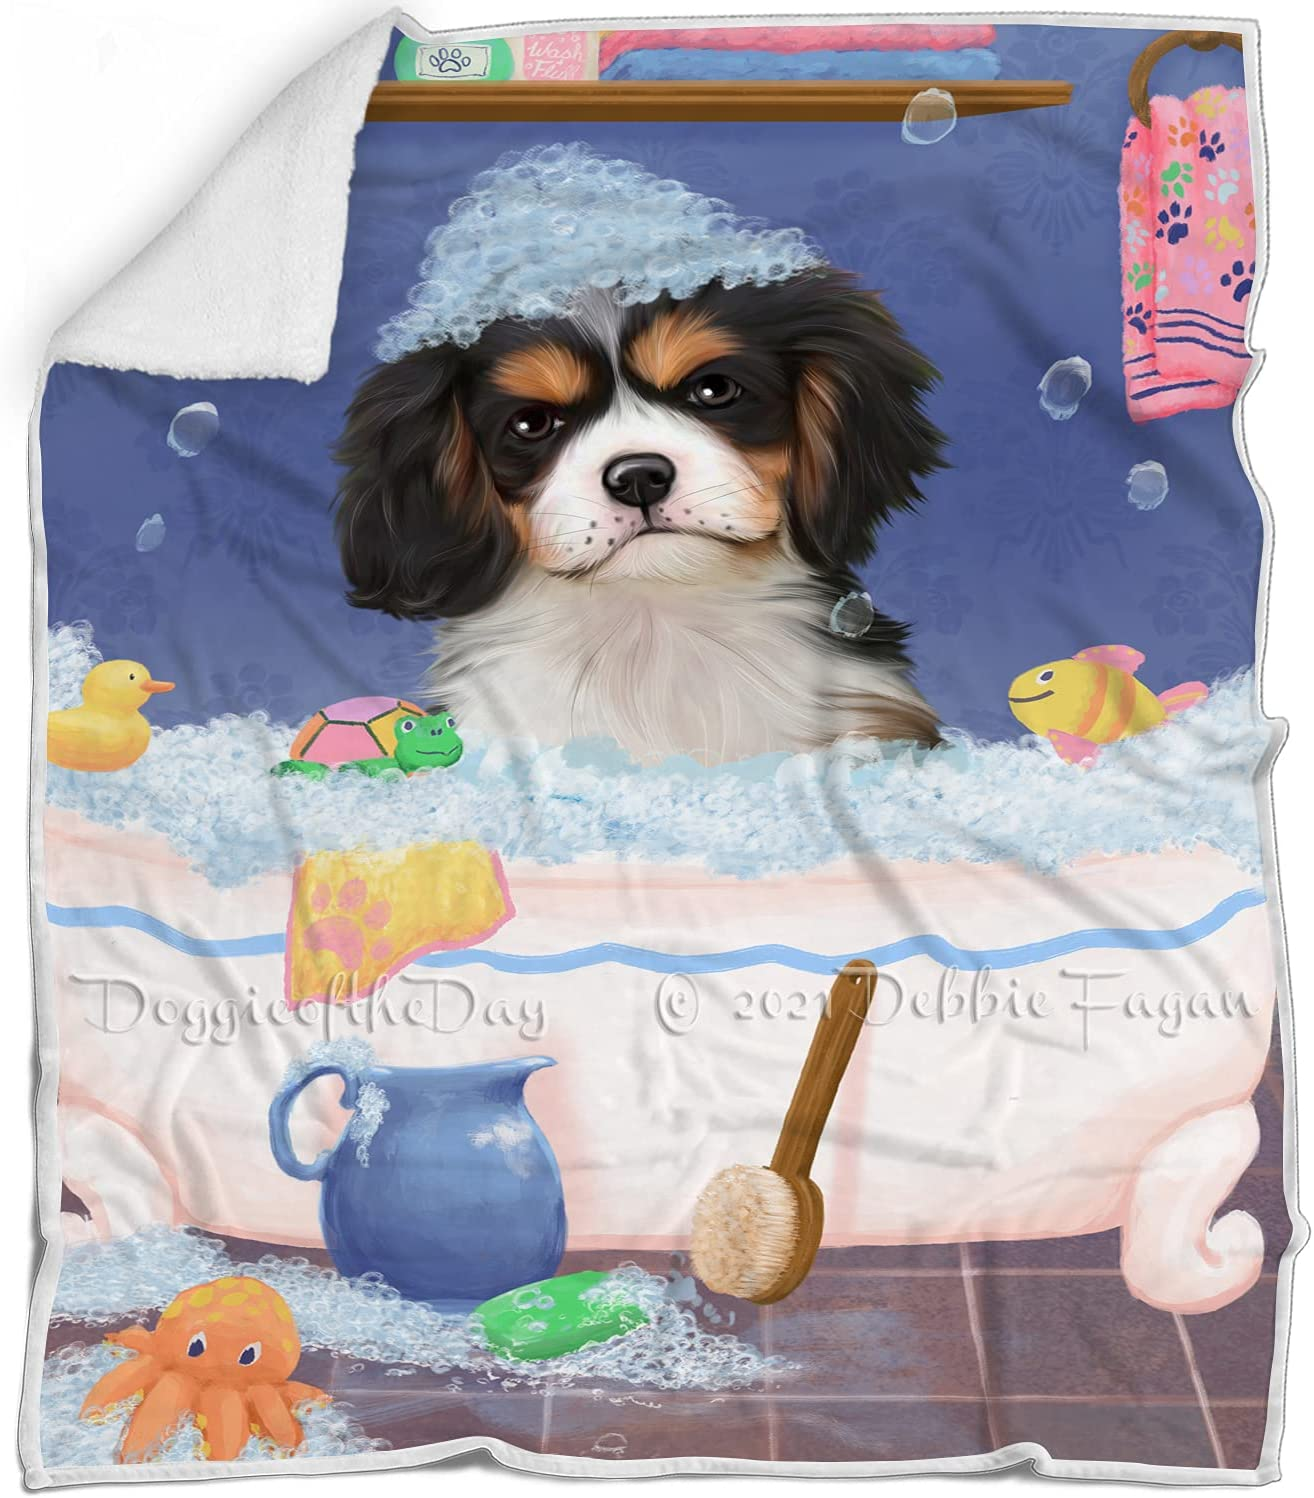 Doggie of the Day Rub A Dub Tub Charles S in King Cavalier Be super welcome Dog 67% OFF of fixed price